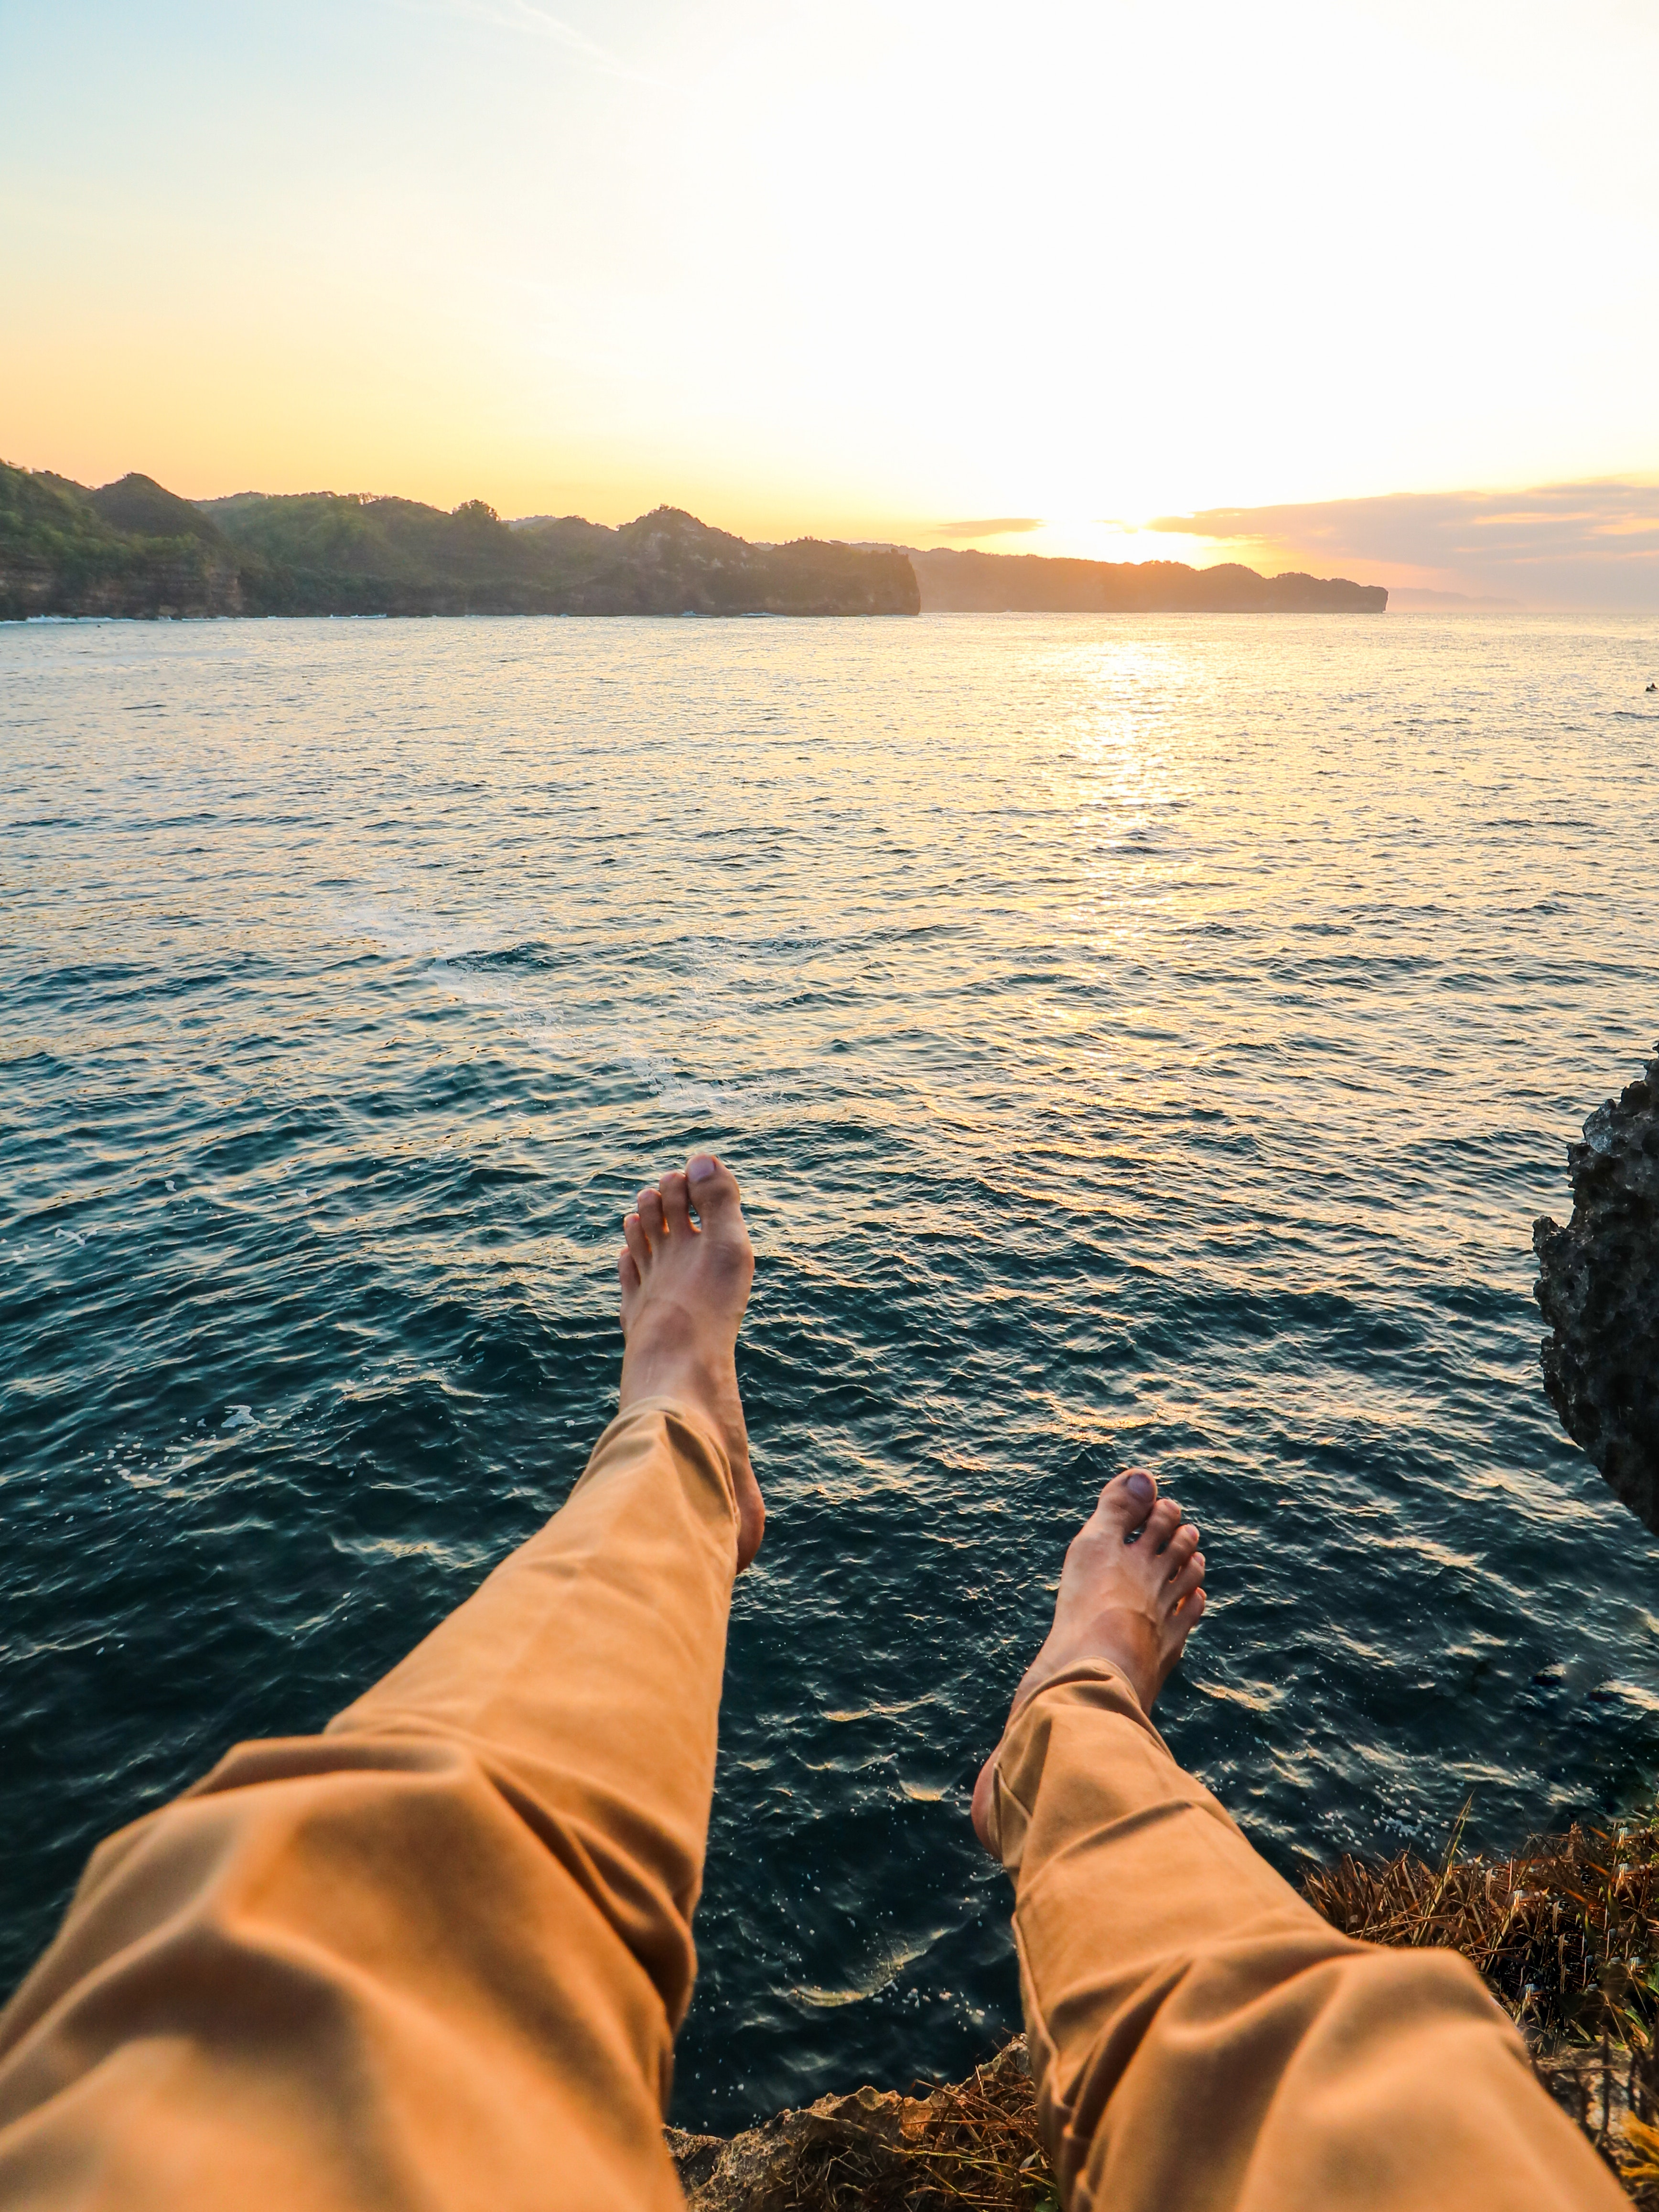 Person Wearing Yellow Pants Sitting on Rock Surrounded by Sea, Adventure, Sunny, Seascape, Seashore, HQ Photo